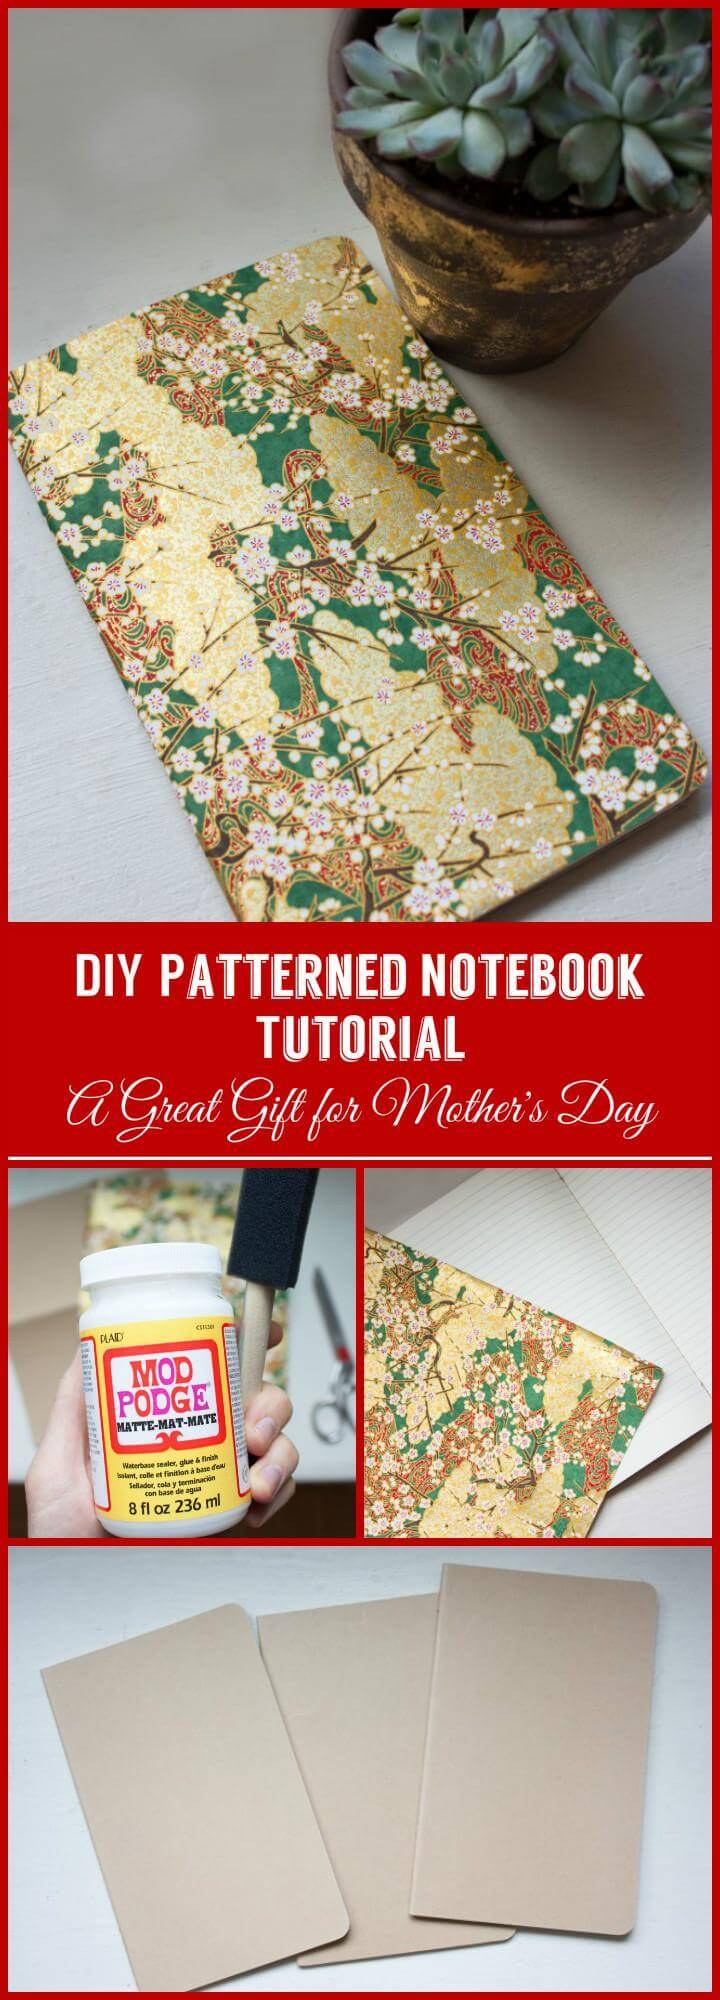 DIY patterned notebook tutorial